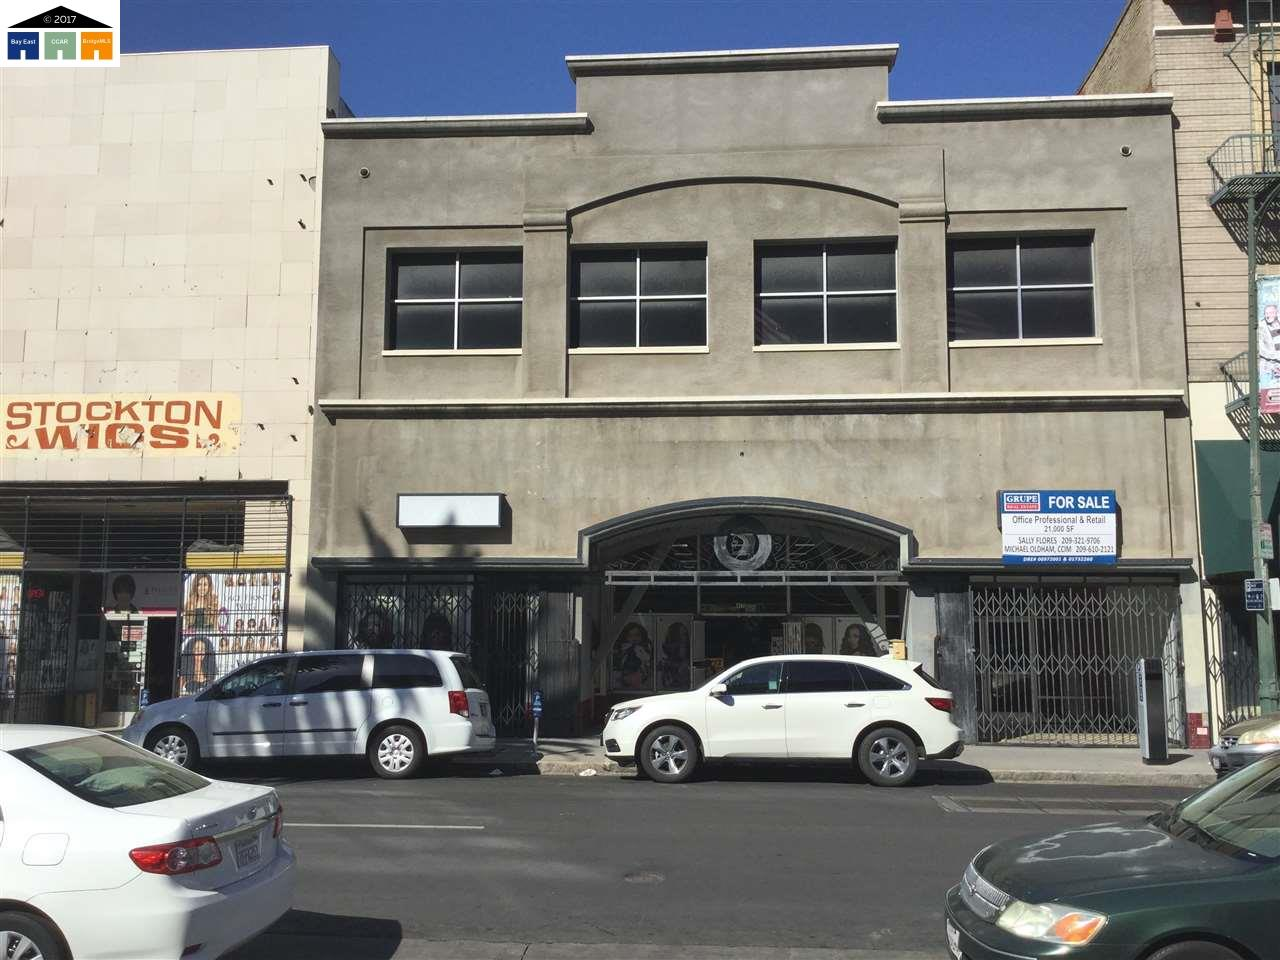 Commercial for Sale at 417 E Main 417 E Main Stockton, California 95202 United States